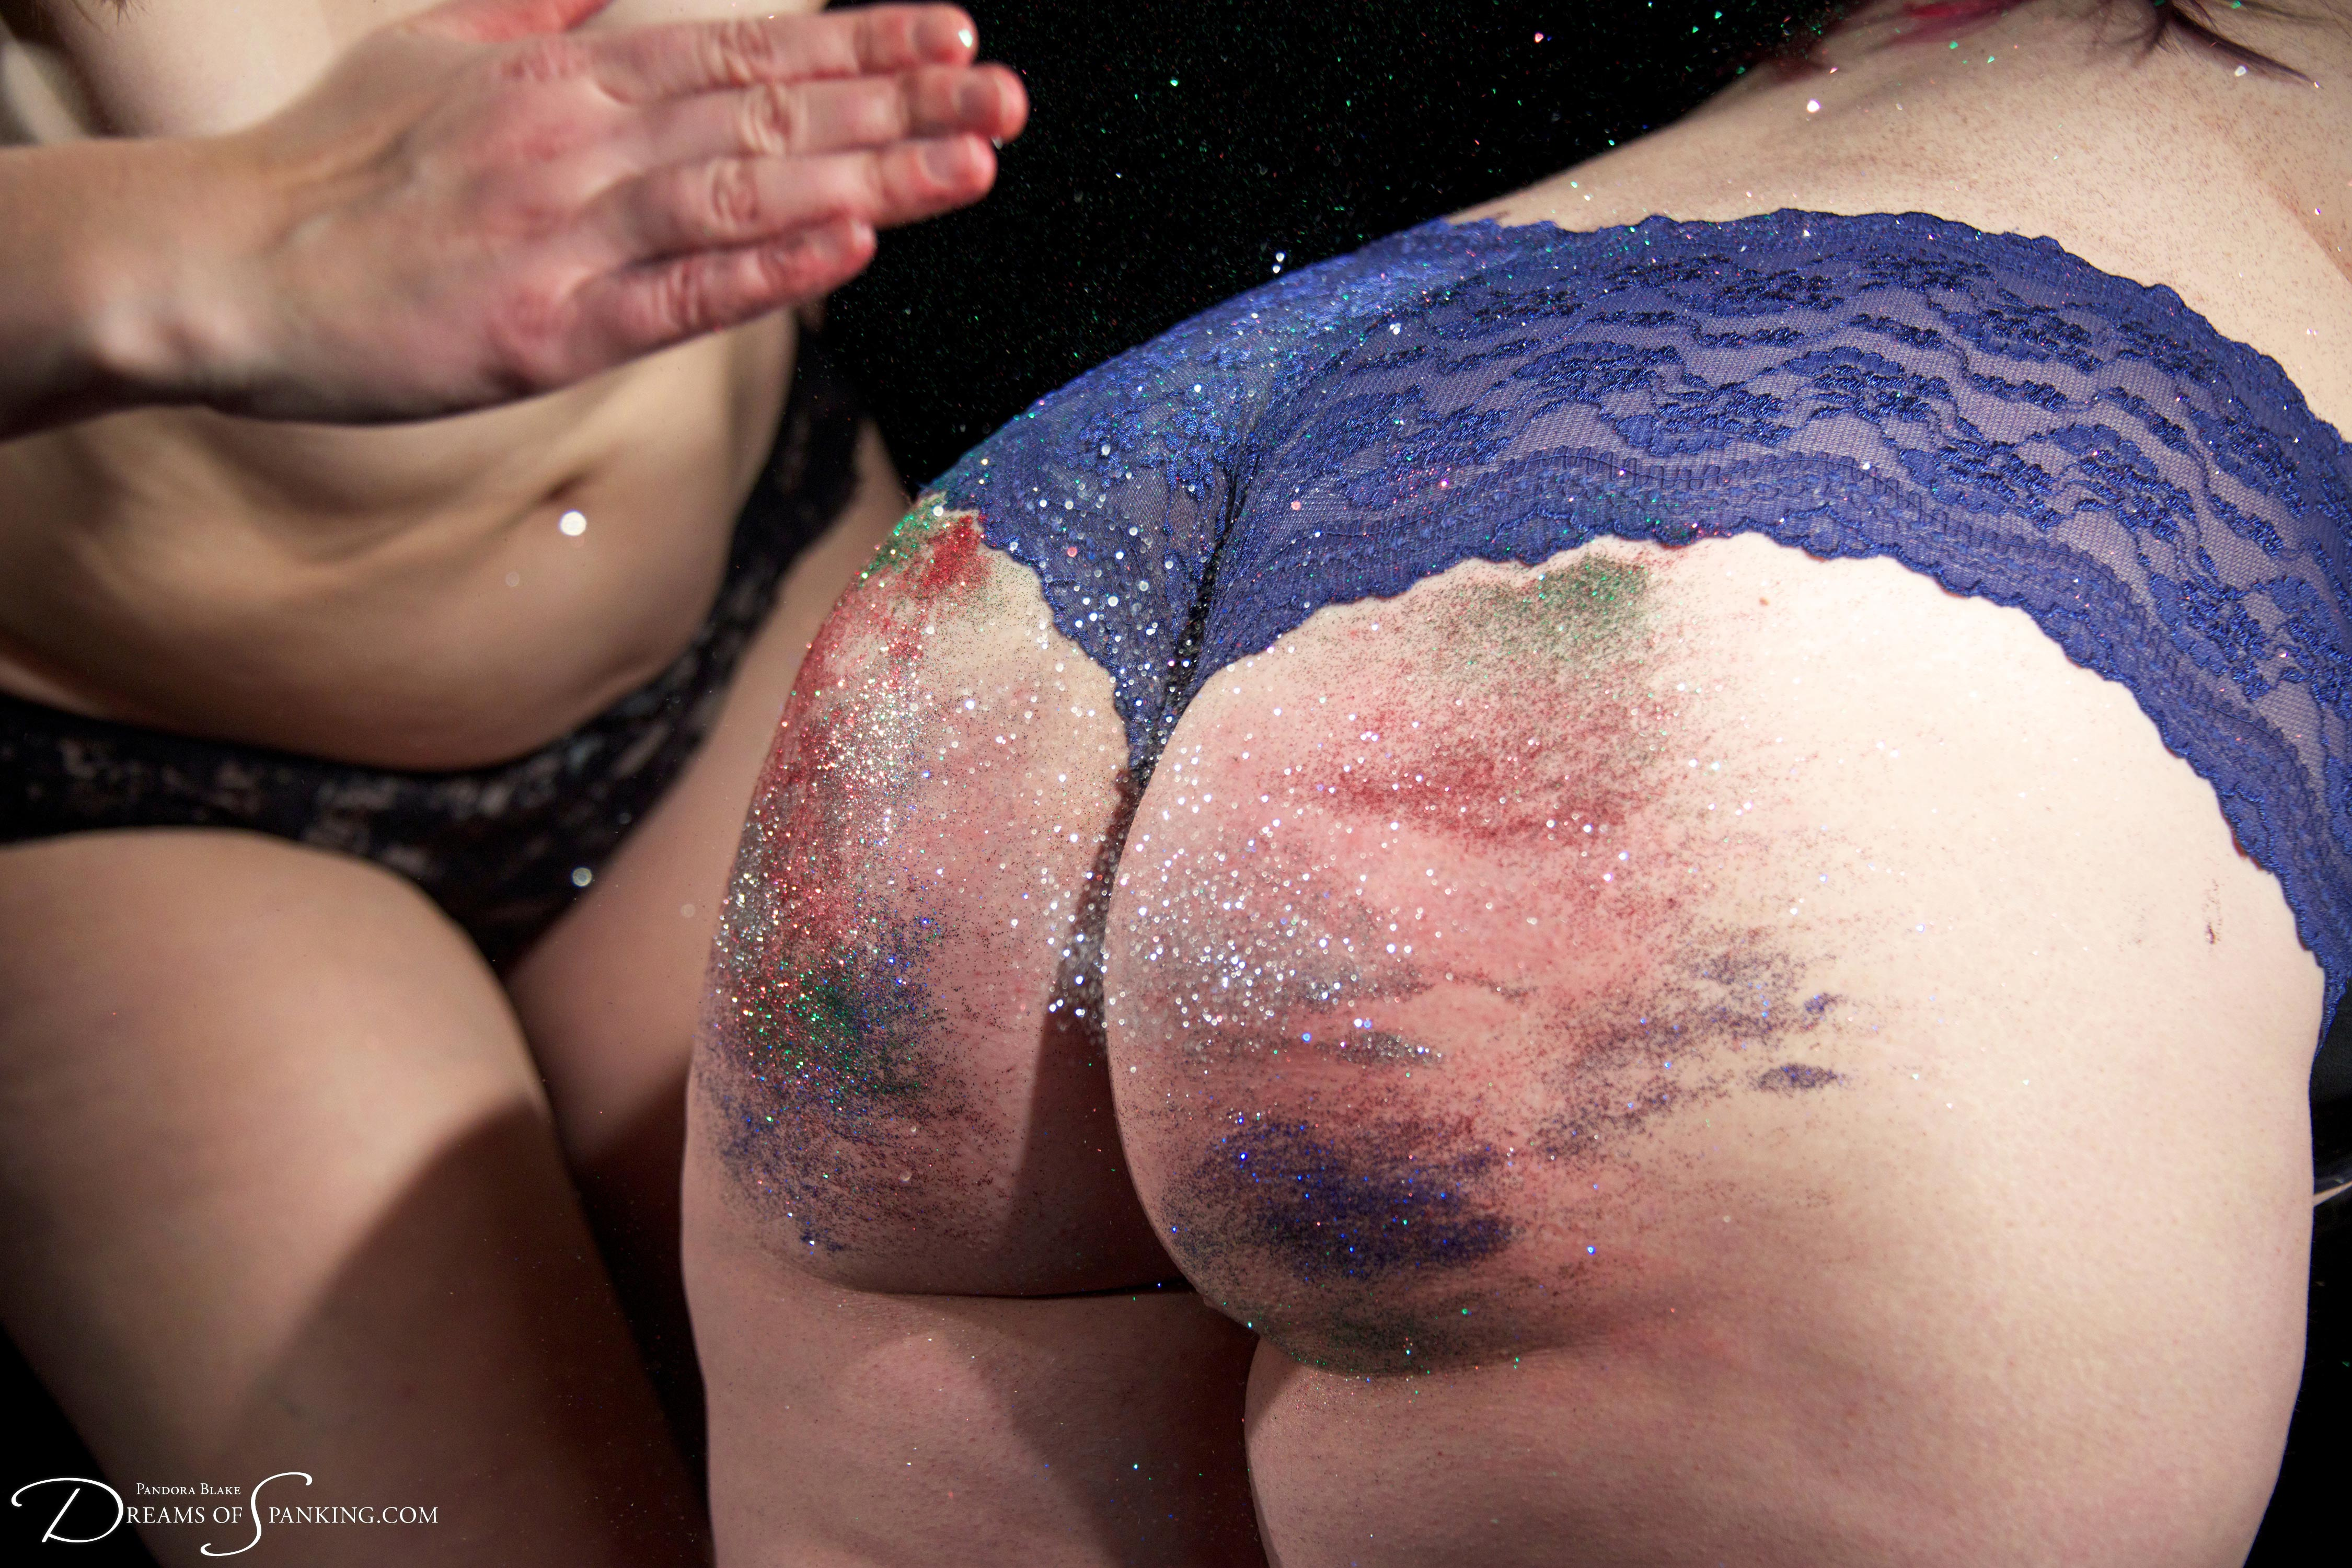 Glitter spanking with Adele Haze and Pandora Blake at Dreams of Spanking